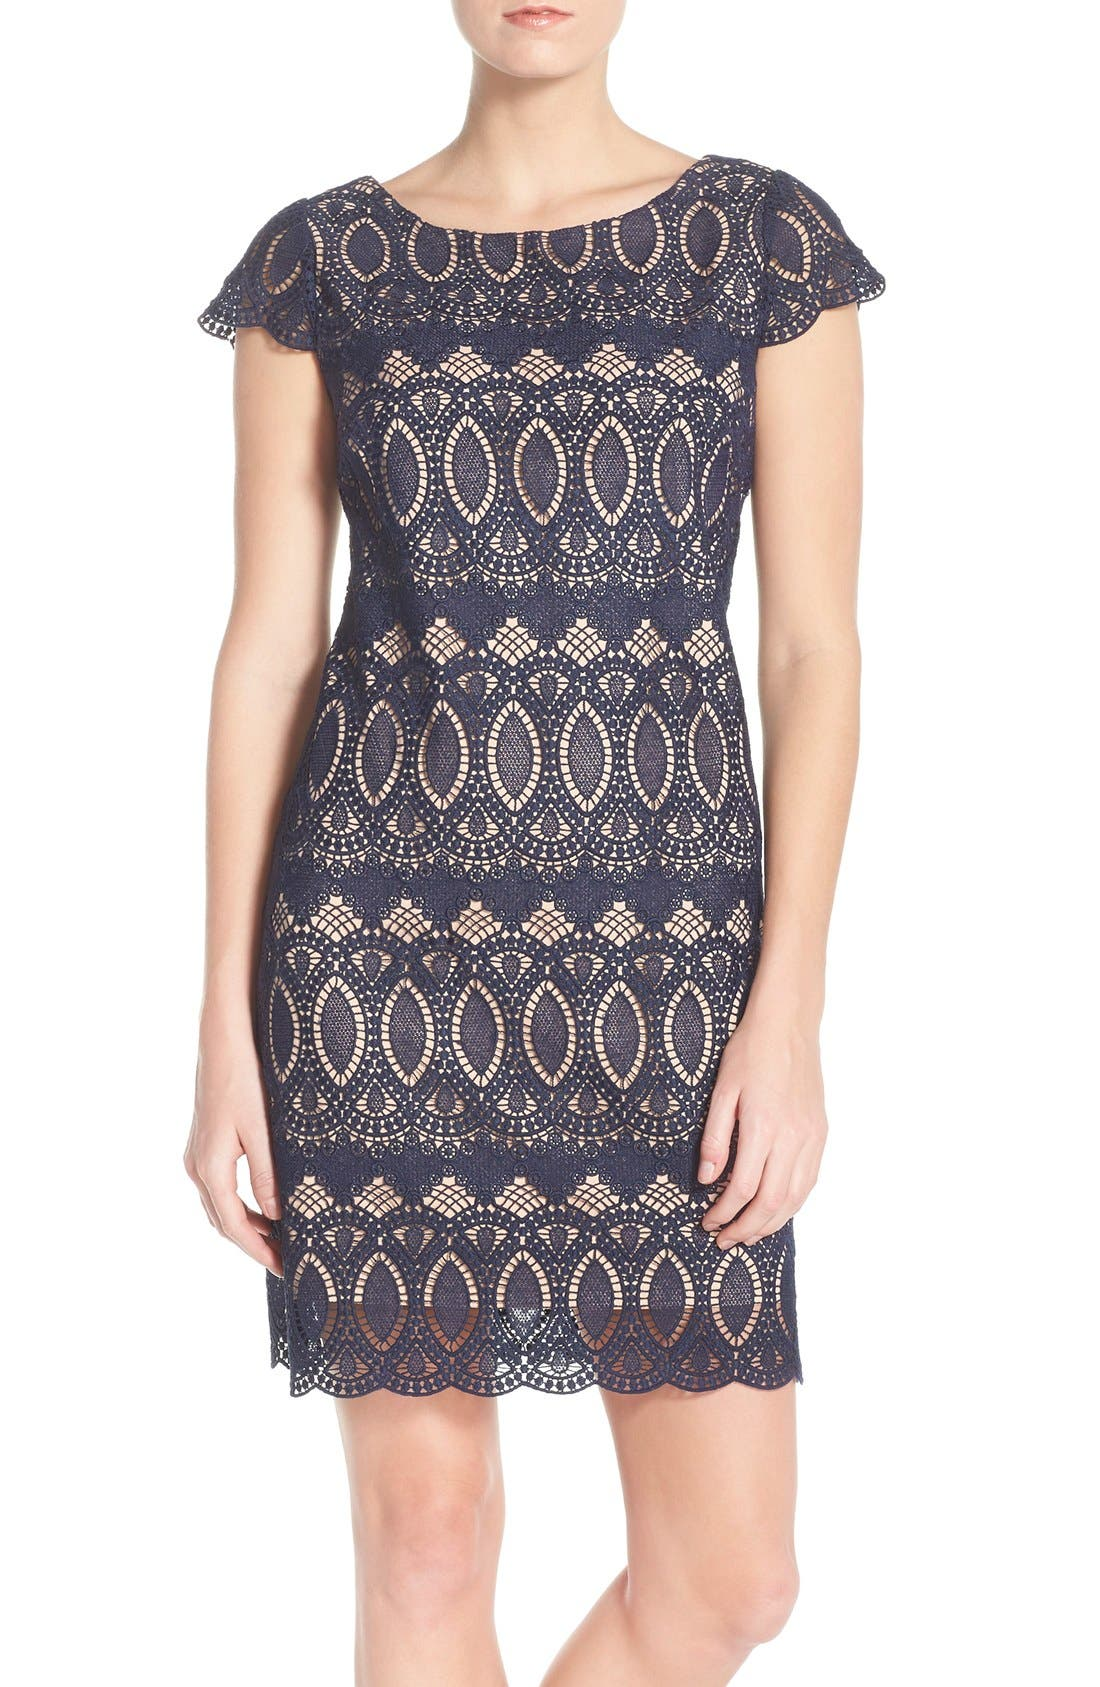 Eliza J Scalloped Lace Sheath Dress (Regular & Petite)